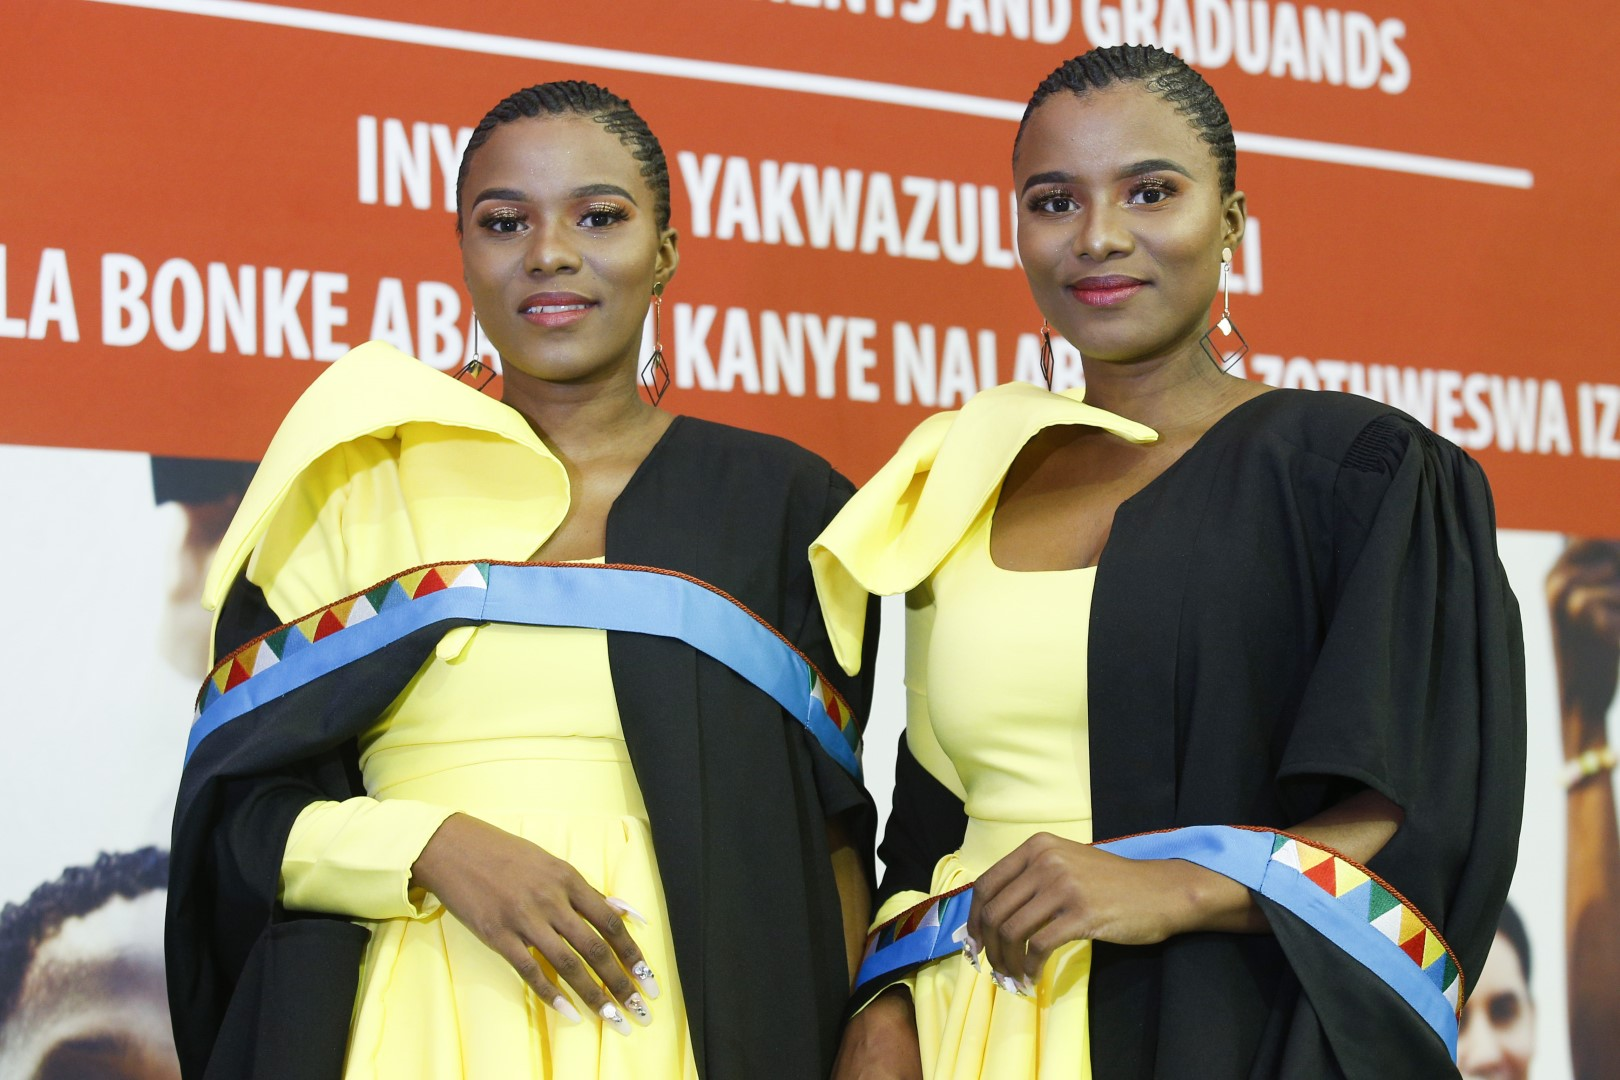 Twins Wanele and Anele Ngcobo graduate from UKZN with Postgraduate Certificates in Education